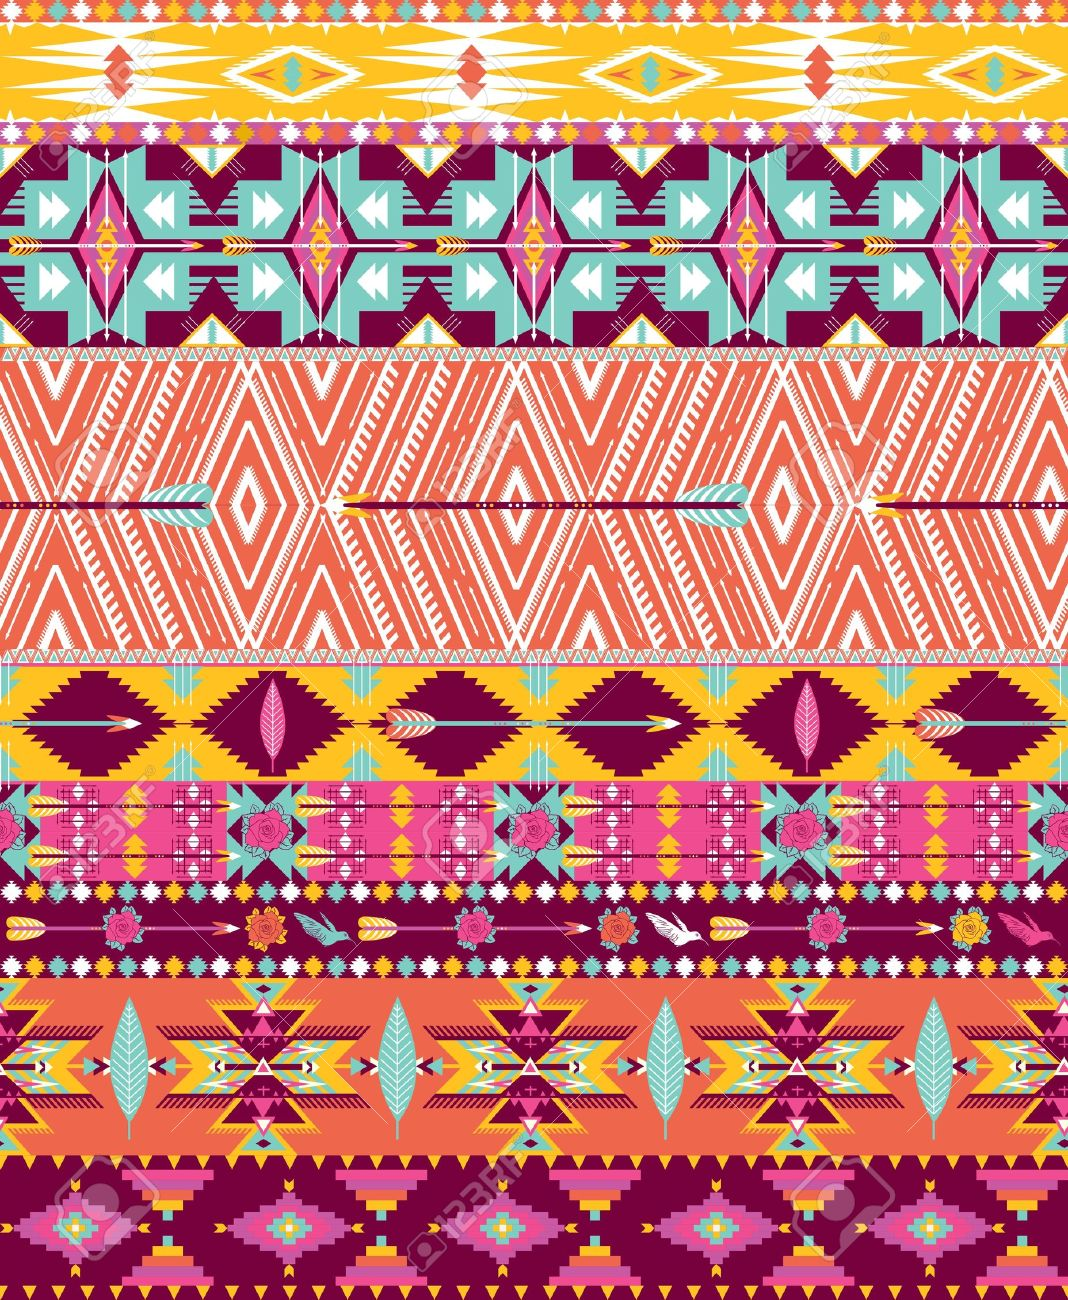 Design Trends Premium Psd Vector Downloads: 27+ Best Aztec Patterns, Wallpapers